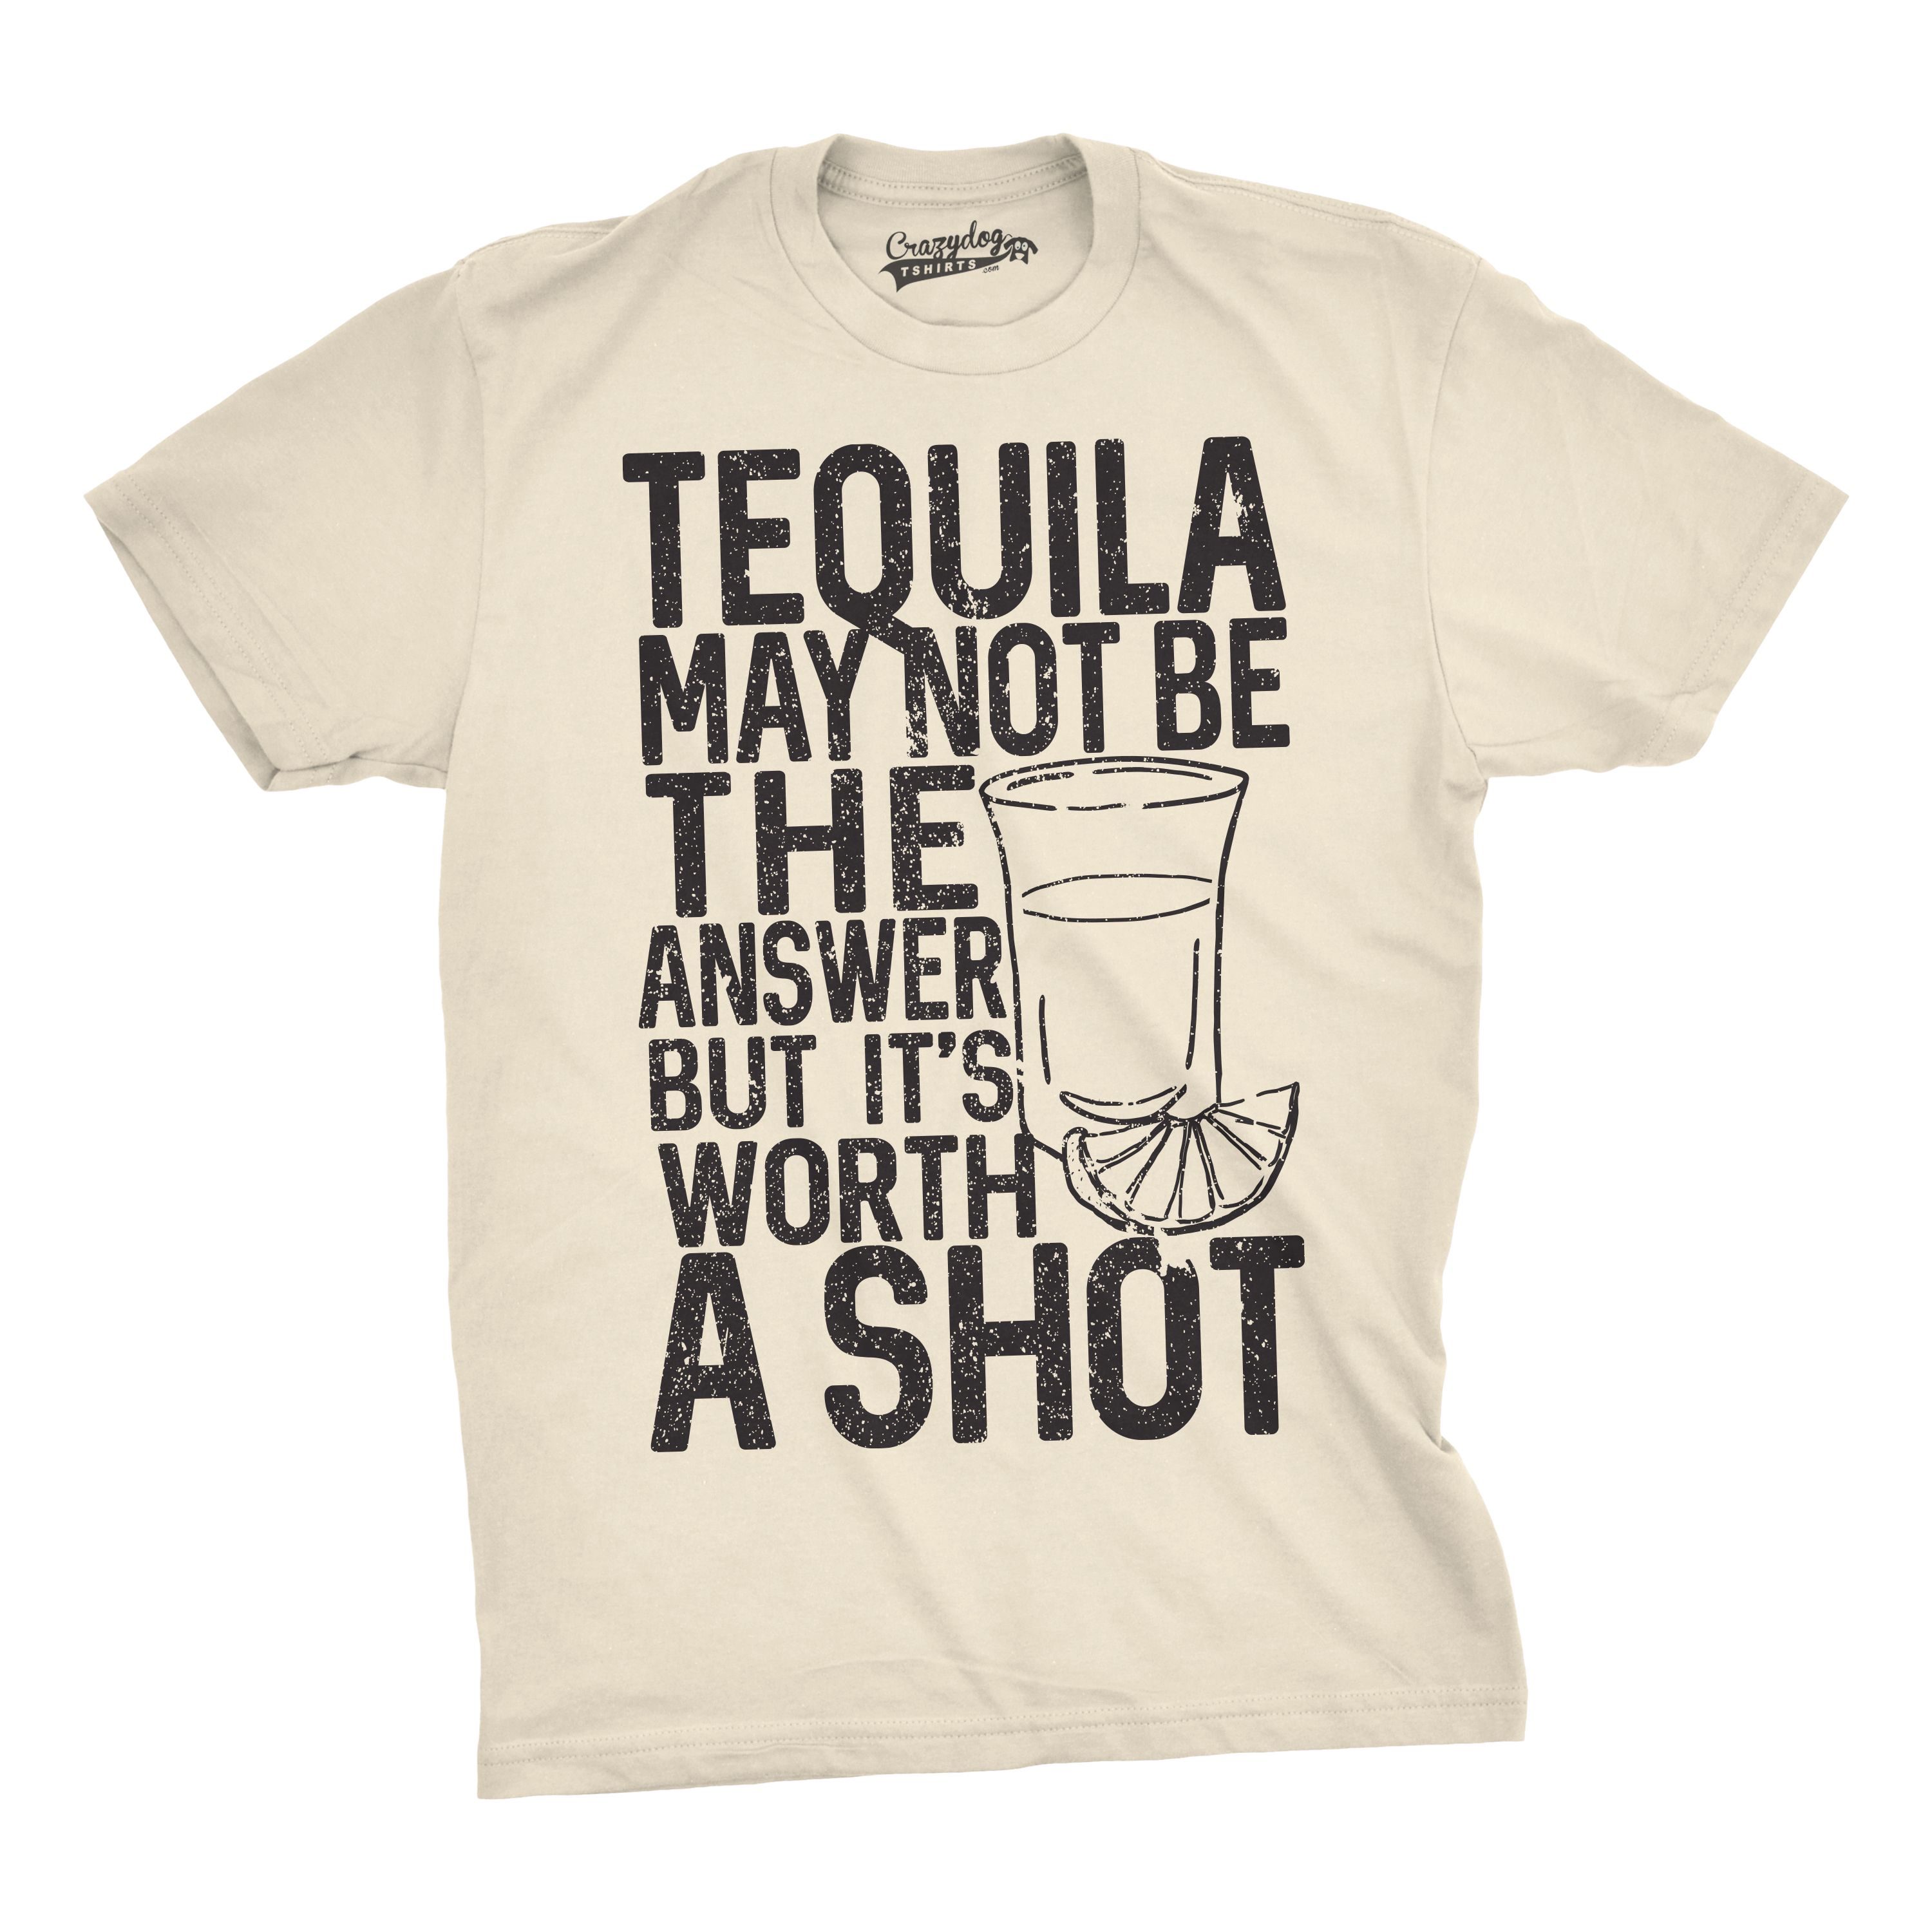 a0e7be920 Mens Tequila Not The Answer Worth a Shot Funny T shirts Hilarious Cinco De  Mayo T shirt (Cream) -S